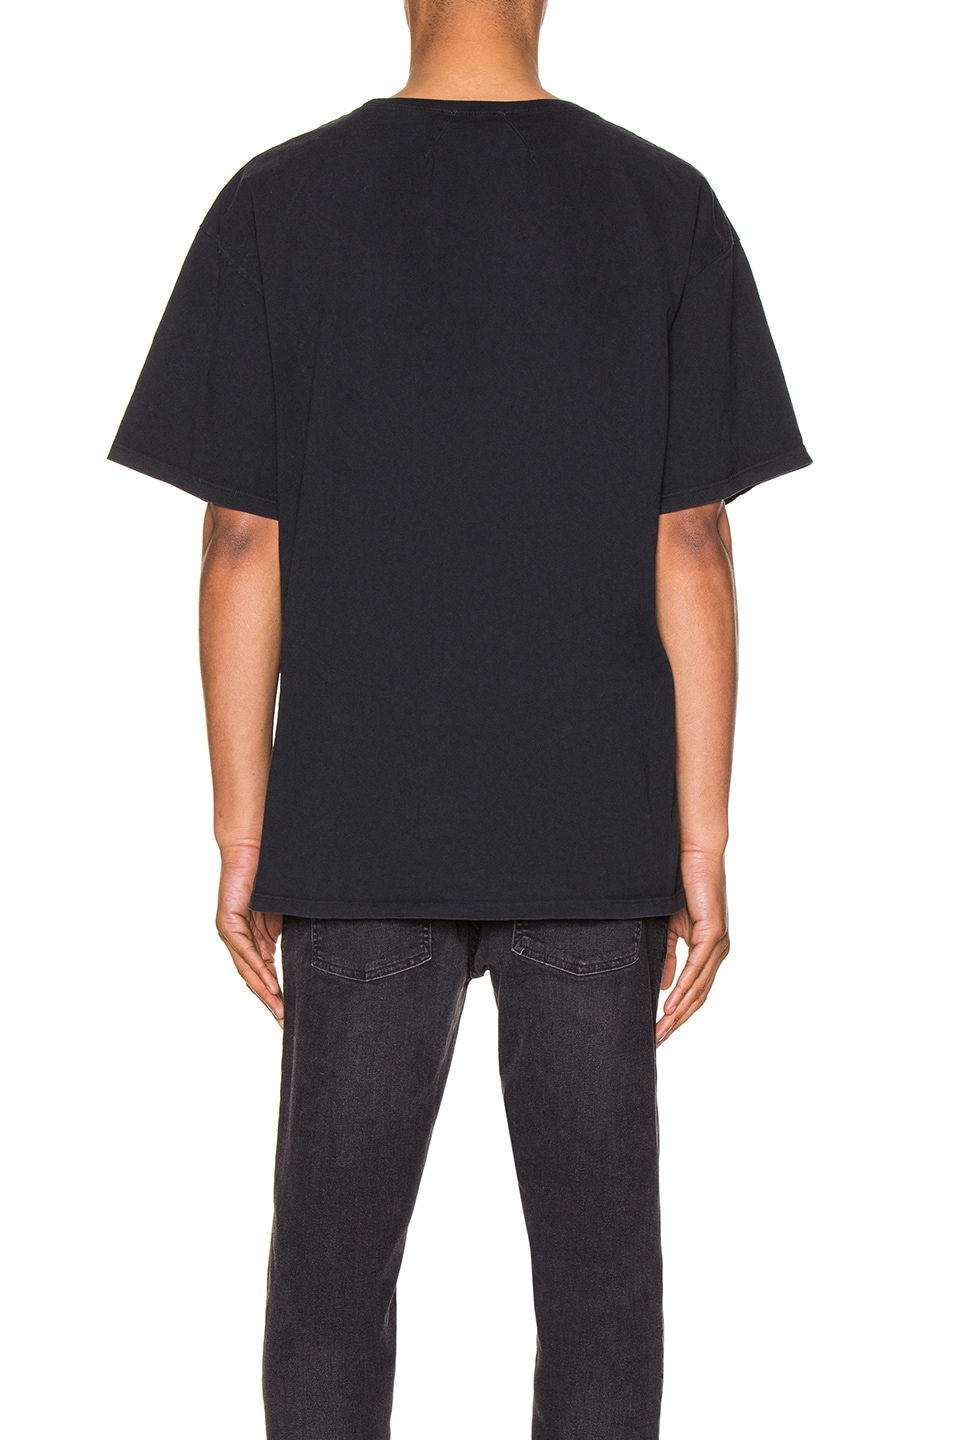 Image 3 of Rhude Rhanger Tee in Black